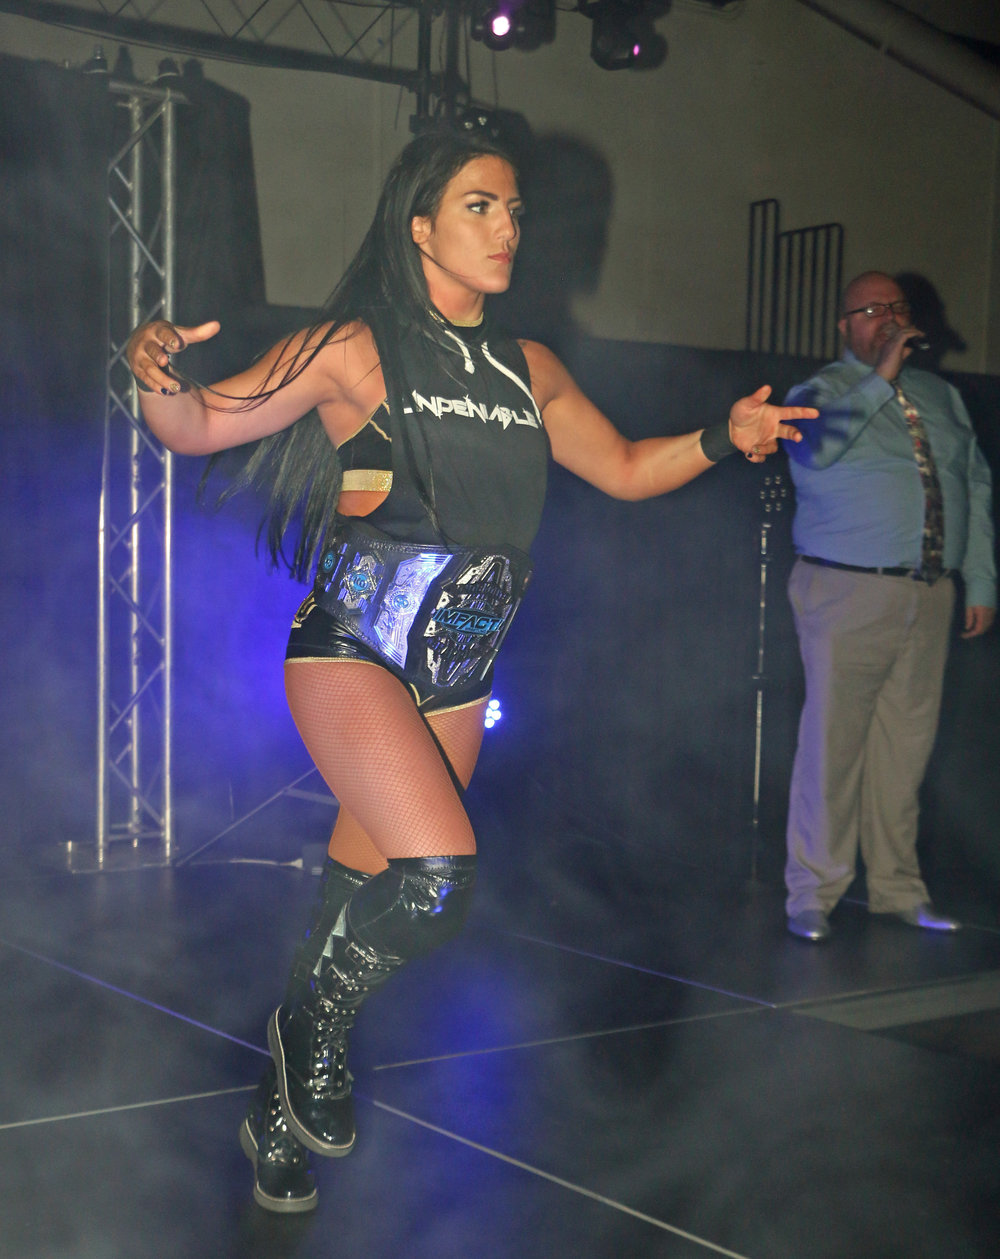 IMPACT Knockouts Champion Tessa Blanchard comes down the ramp for her match.